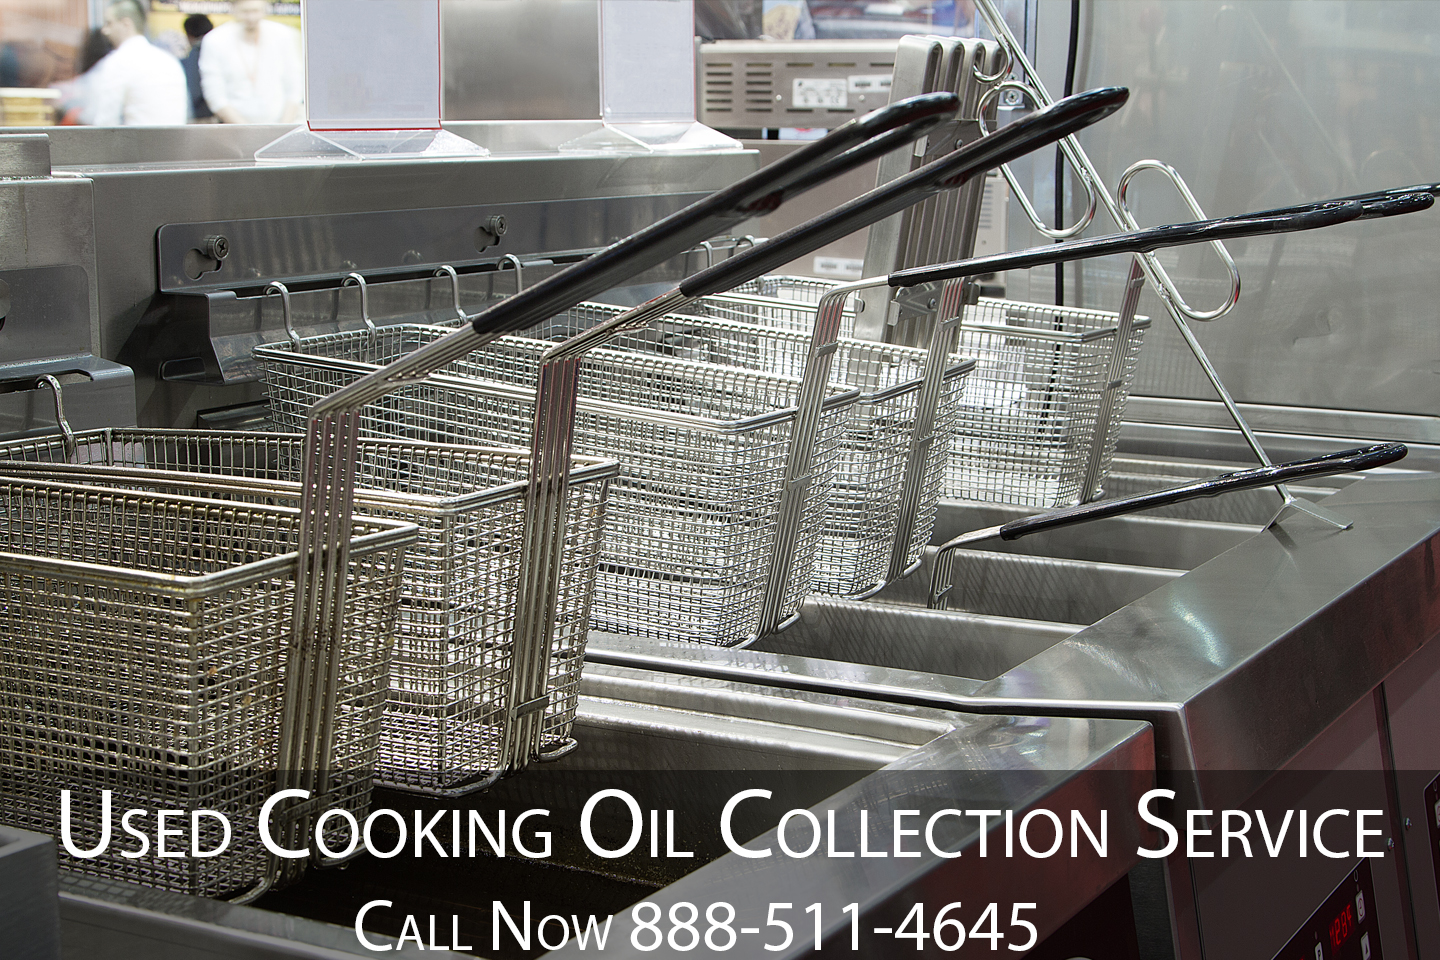 It is required by the city Villa Park, for all food servicing establishments to hire a licensed used cooking oil collection company to pick up and properly remove their waste cooking oil. As grease collection recycling companies, we must ensure that all waste is transported safely and disposed properly.  The majority of used cooking oil collected from commercial kitchens are filtered and processed turning it into renewable fuel called biodiesel. With a large increase in food servicing estabishments, a substantial amount of coming from restaurants are responsible for a major percentage of fueling transportation vehicles.